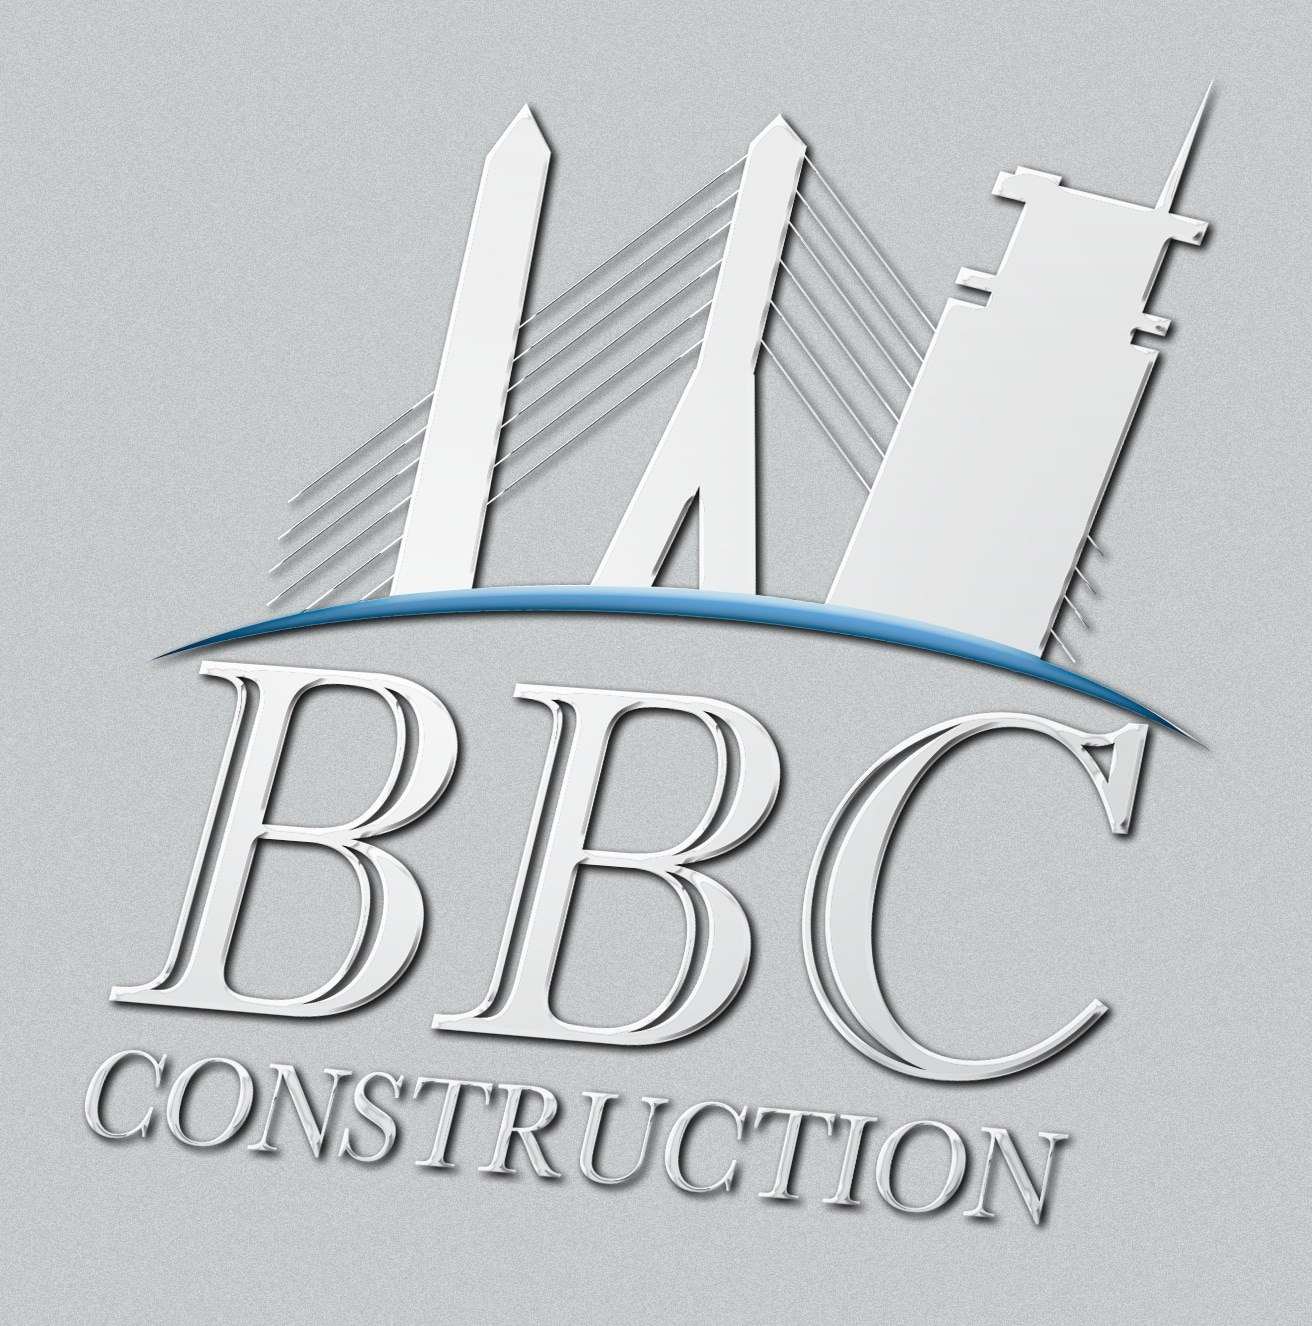 Boston Best Construction logo